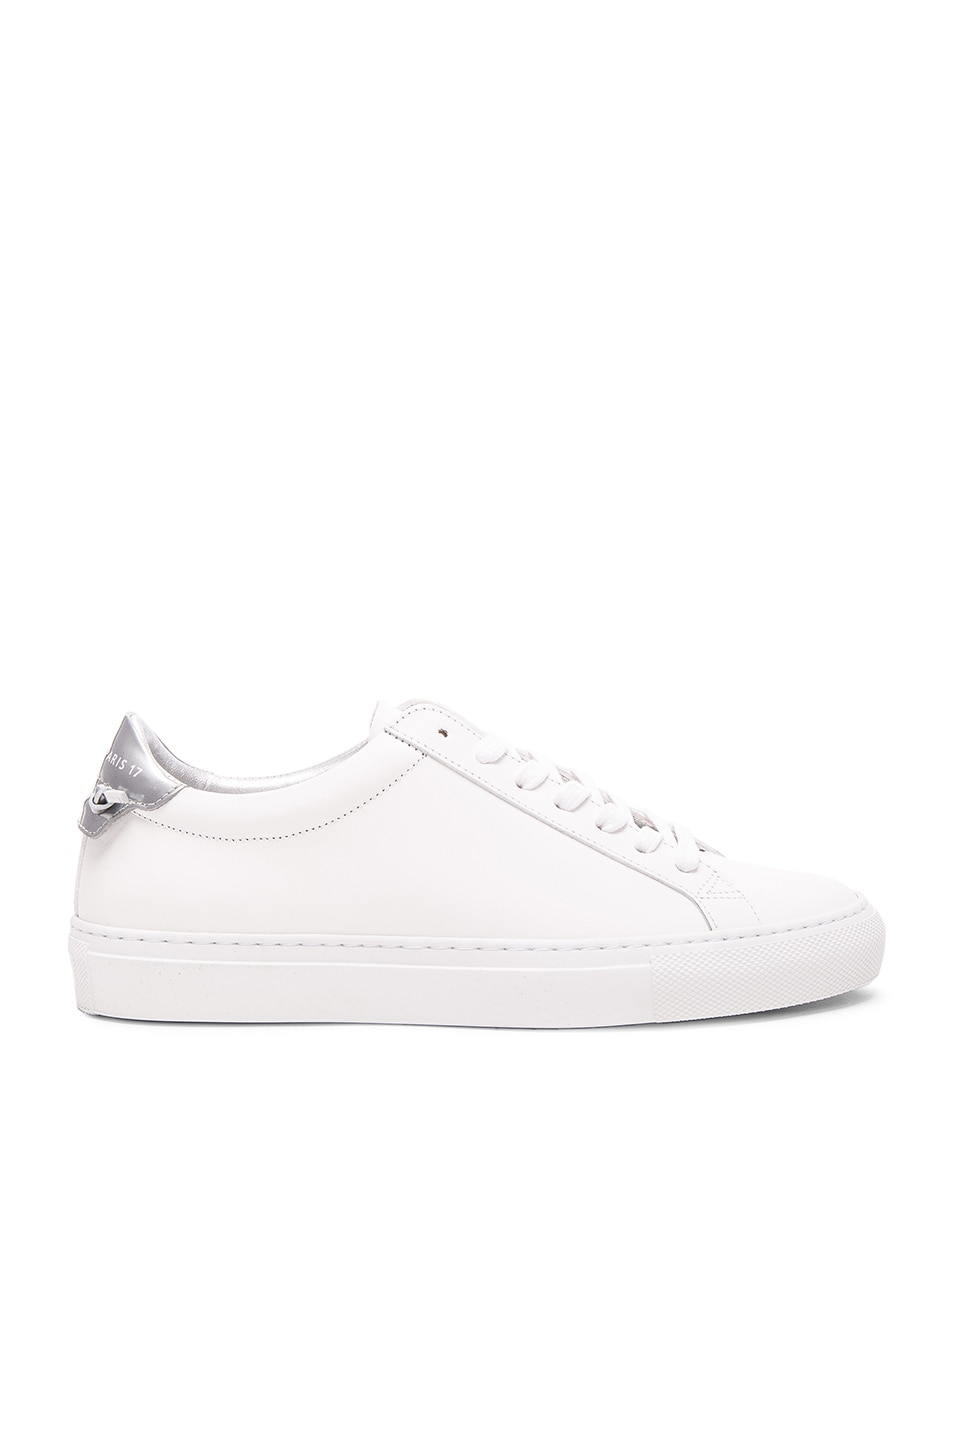 Image 1 of Givenchy Leather Urban Knots Low Sneakers in White & Silver